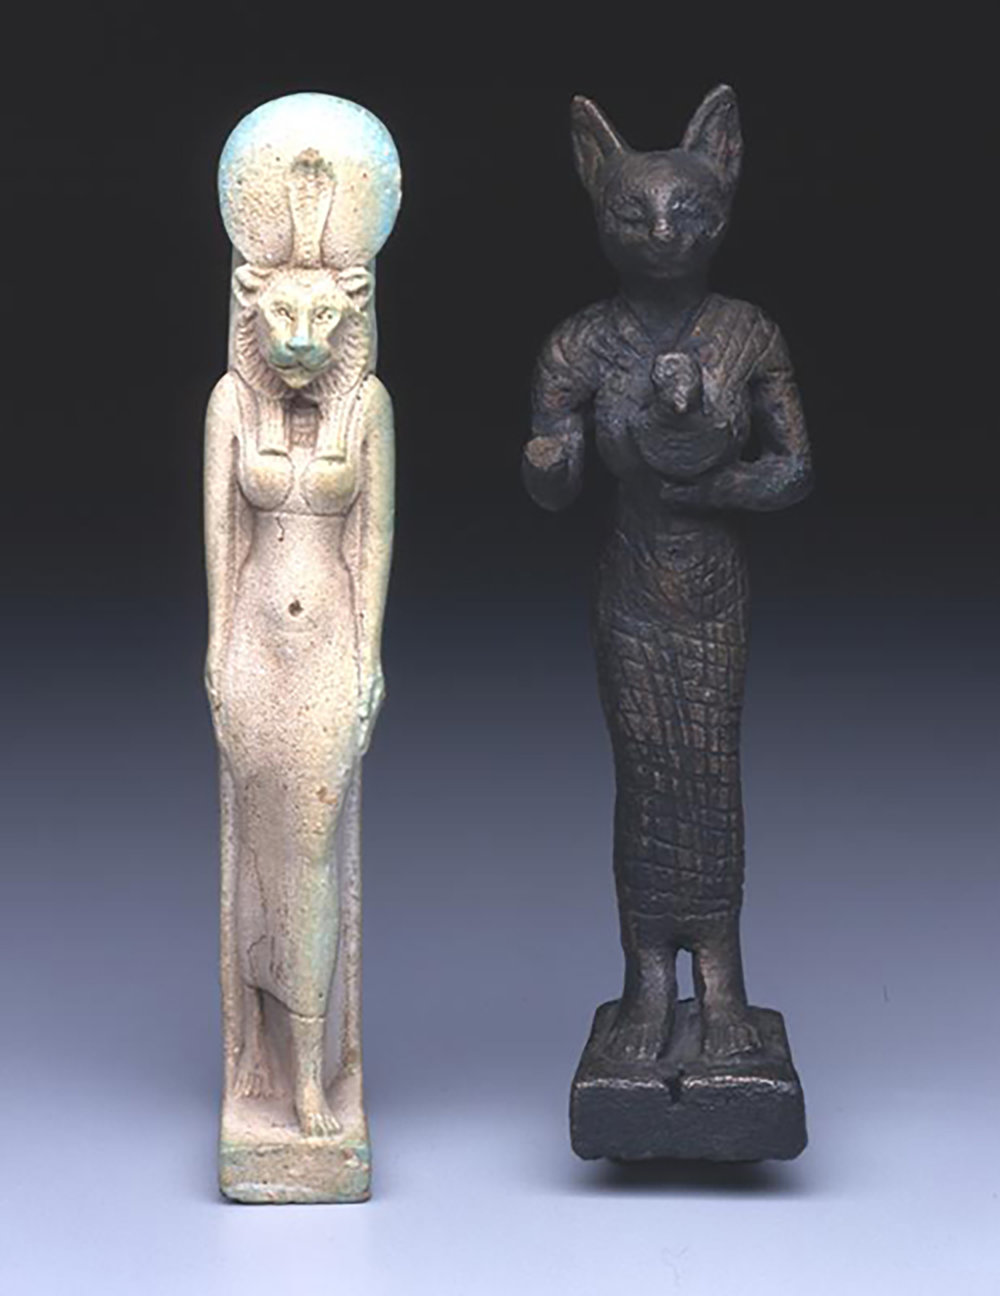 Figure 25: A faience amulet of Sekhmet, post Third Intermediate Period (after 656 BCE) and a bronze votive statuette of Bastet, Late Period (664-332 BCE). Penn Museum E14357 and 29-70-695.